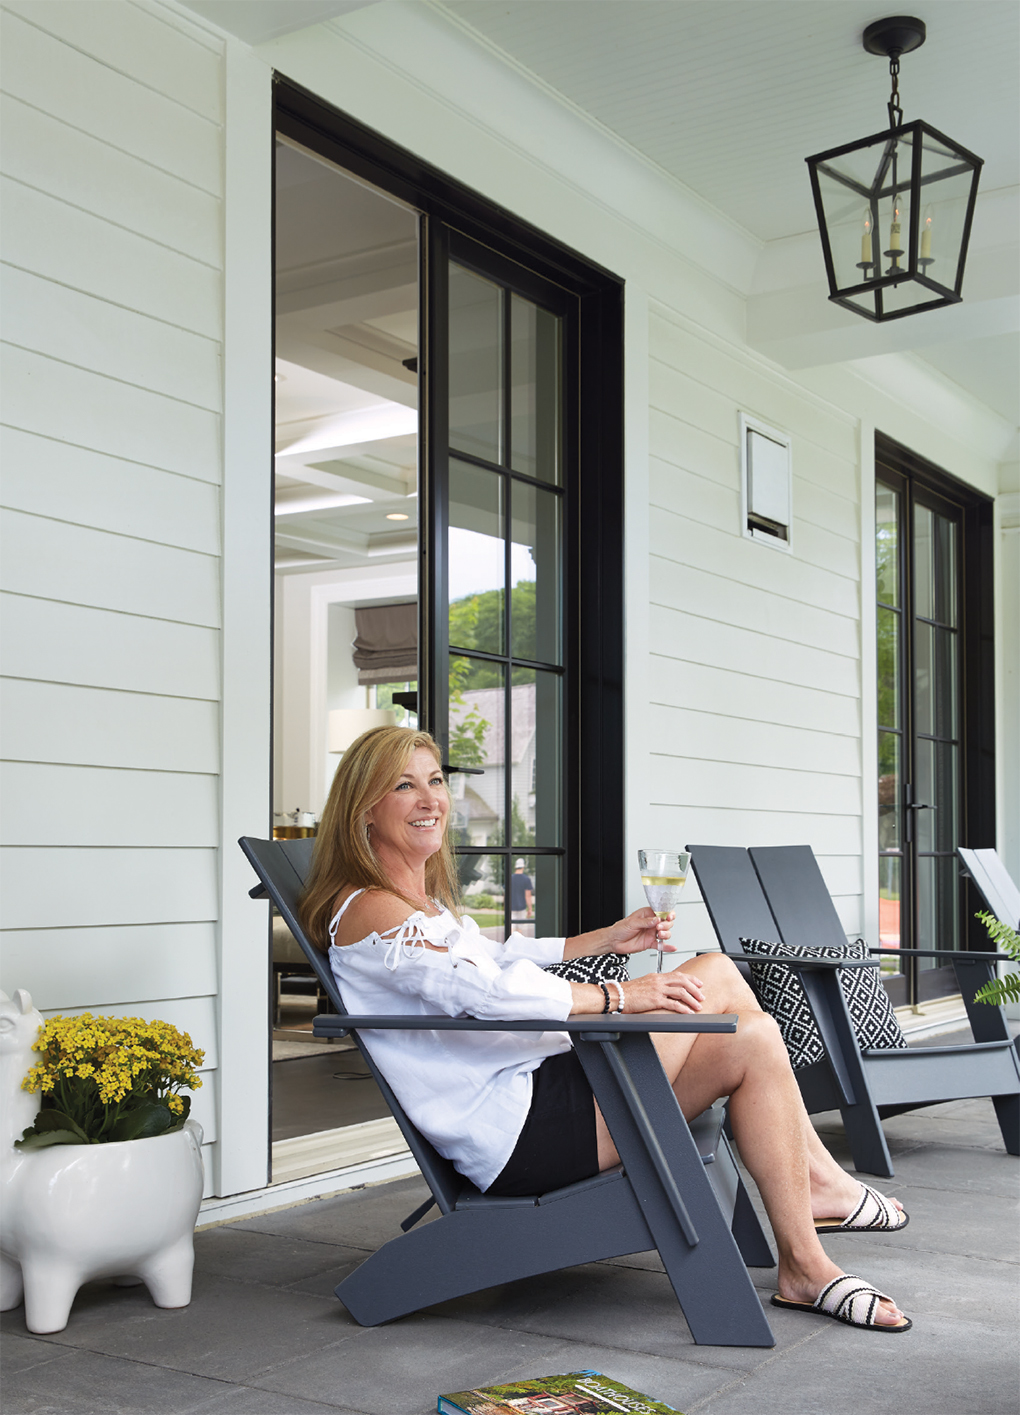 Kathy Nelsen relaxing in a chair on the front porch of her home.